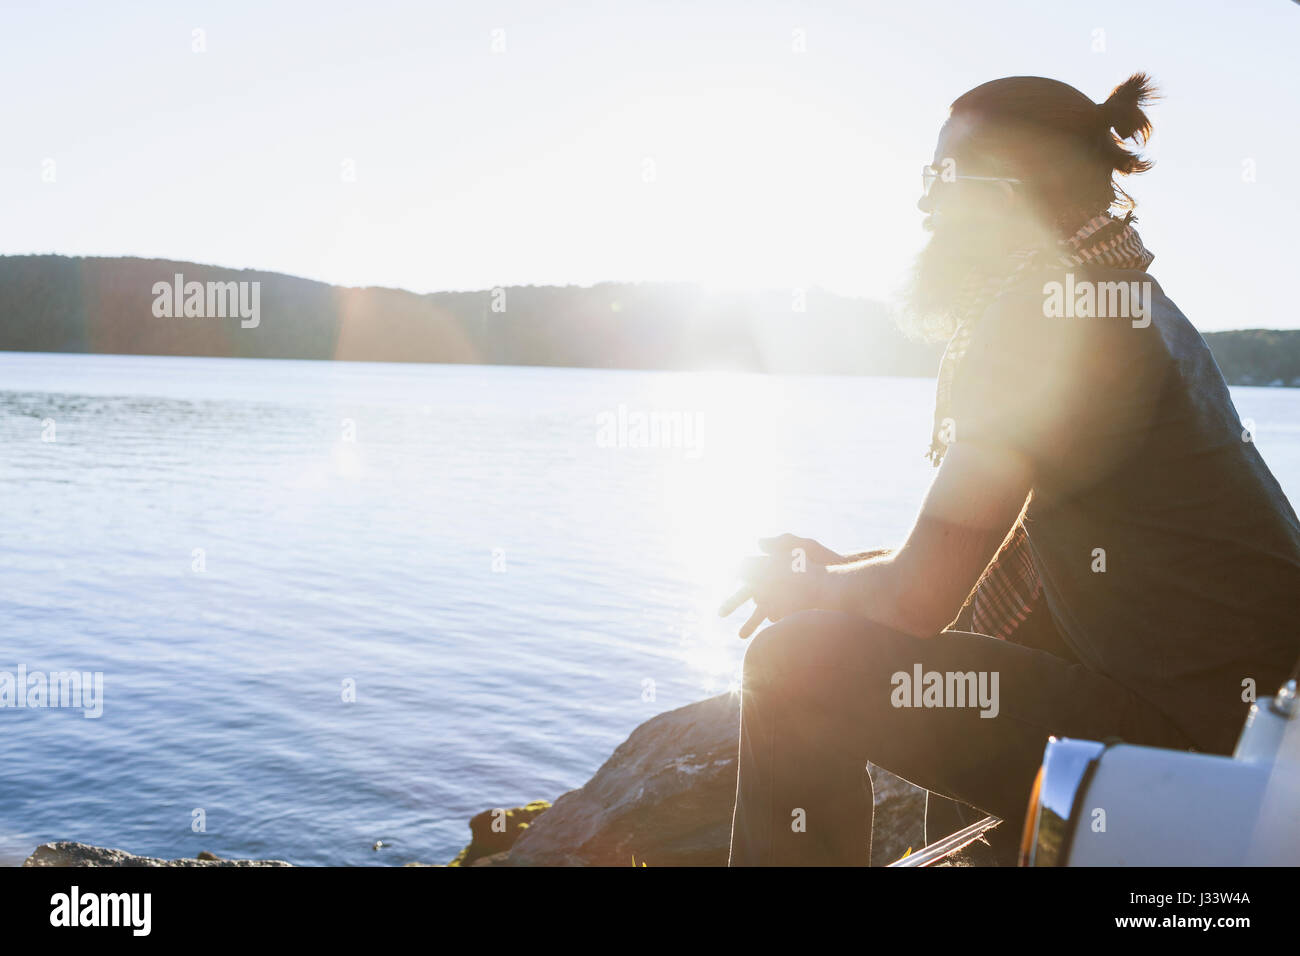 Young man admiring the view at a scenic lake - Stock Image